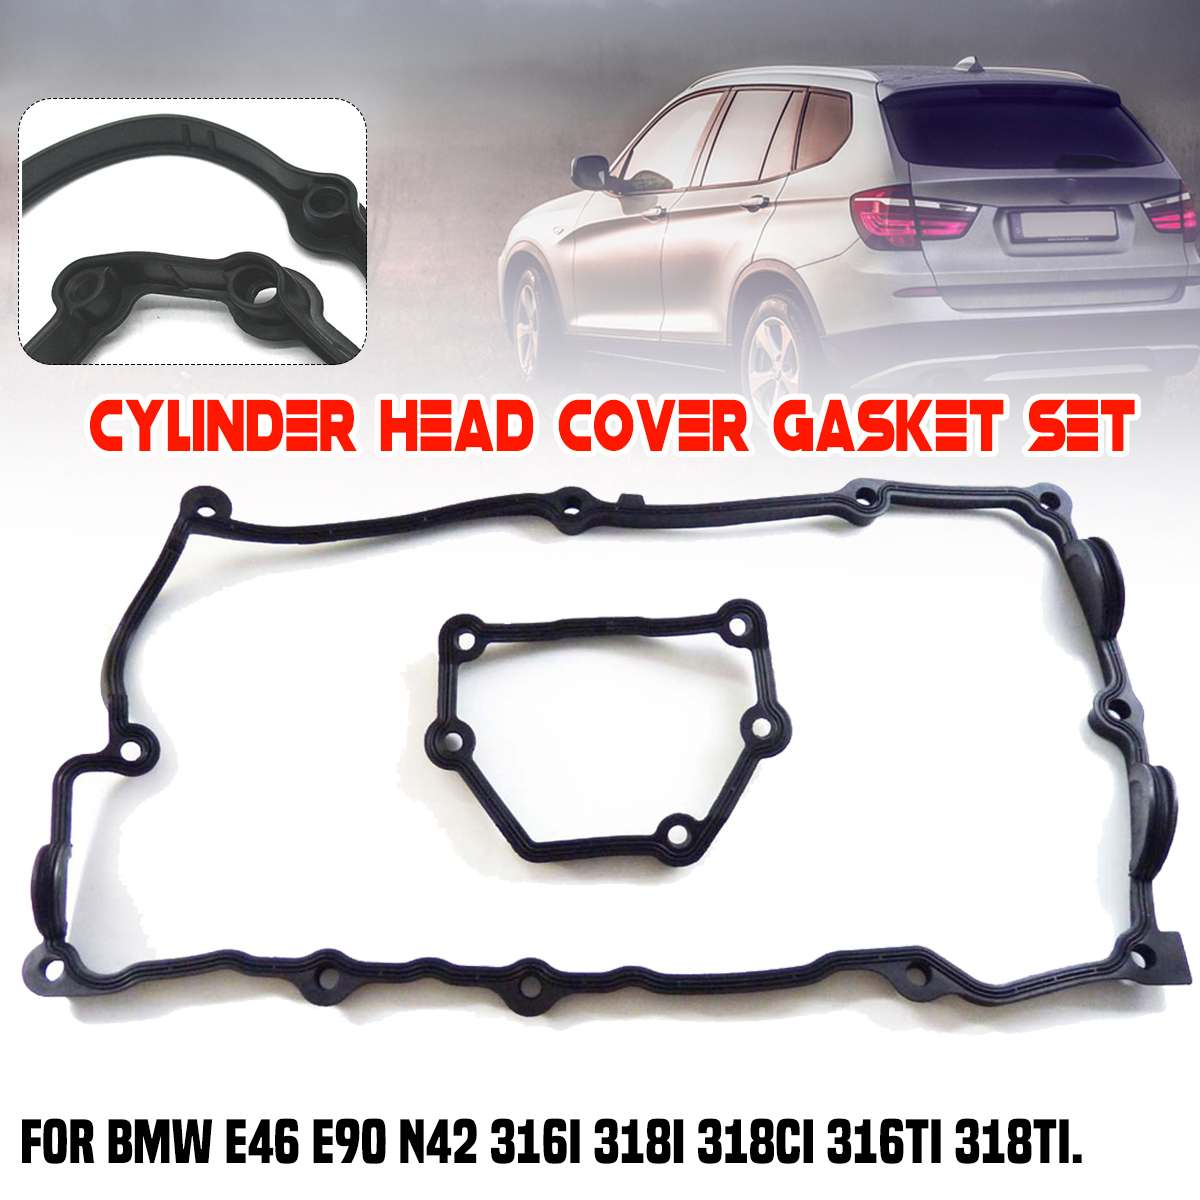 Engine Valve Cover Gasket Set with Tube Seals fits Bmw 1-3-5-x3-x5-z4-Series